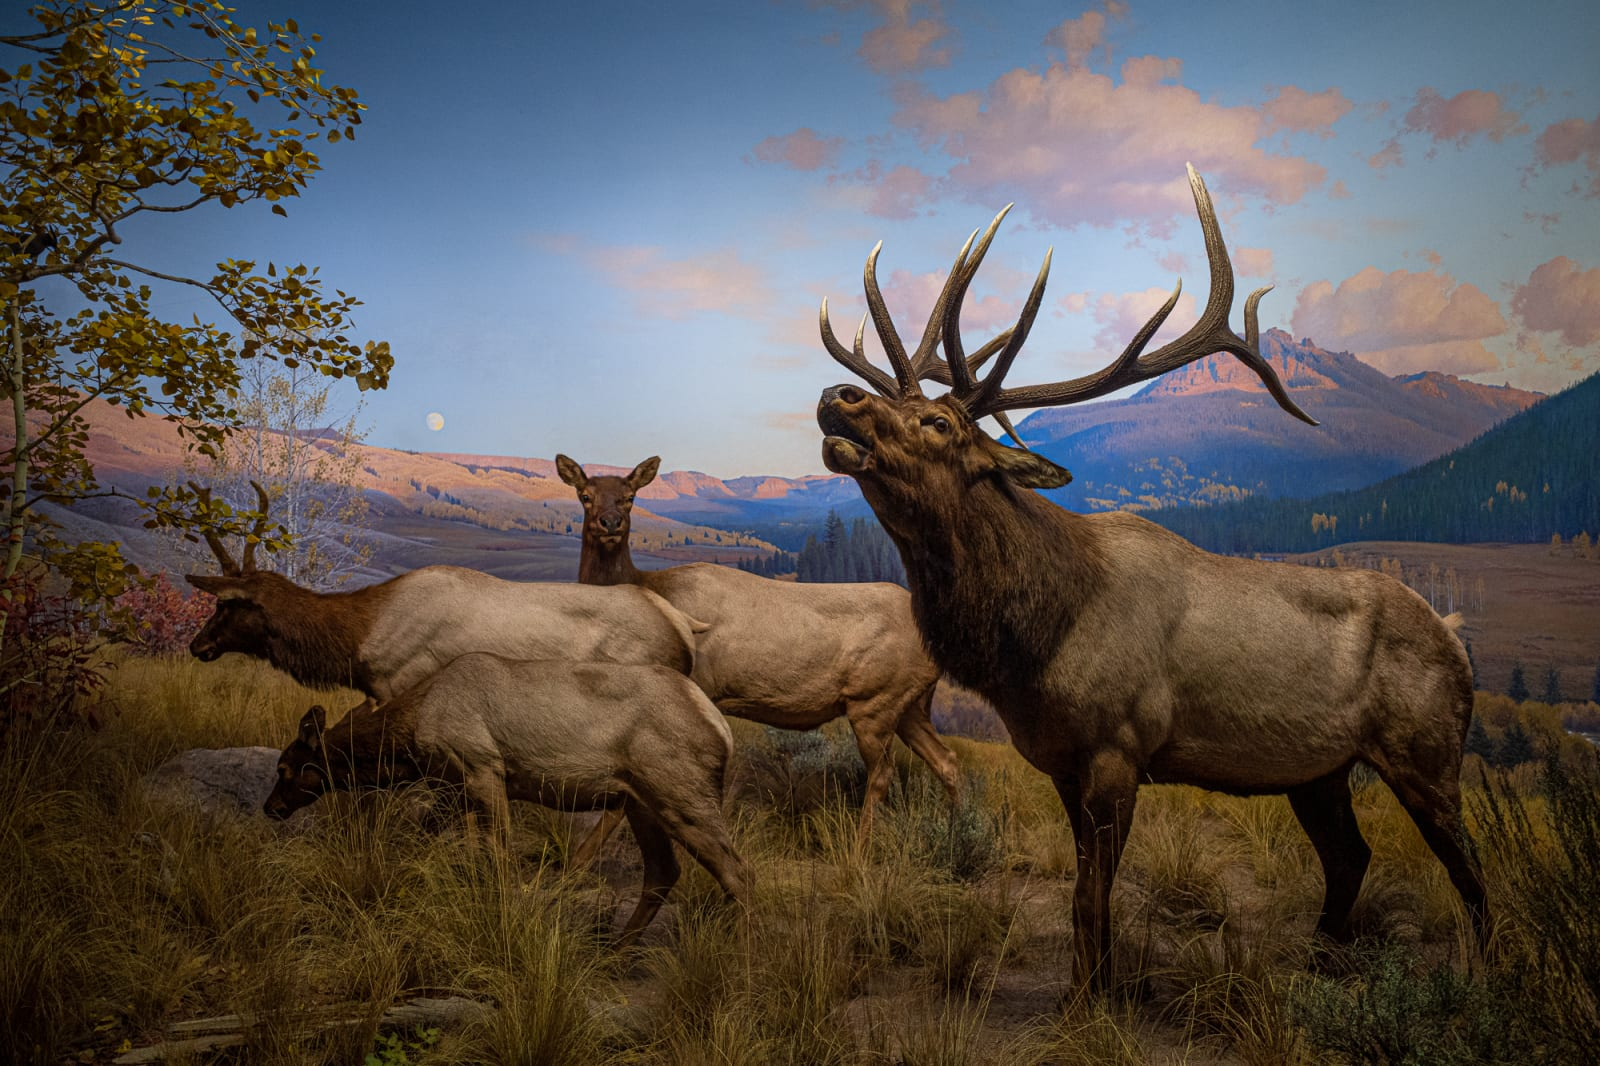 Photo taken at the Hall of North American mammals in the Natural History Museum, NYC. Saw a big herd of these in Estes Park, CO